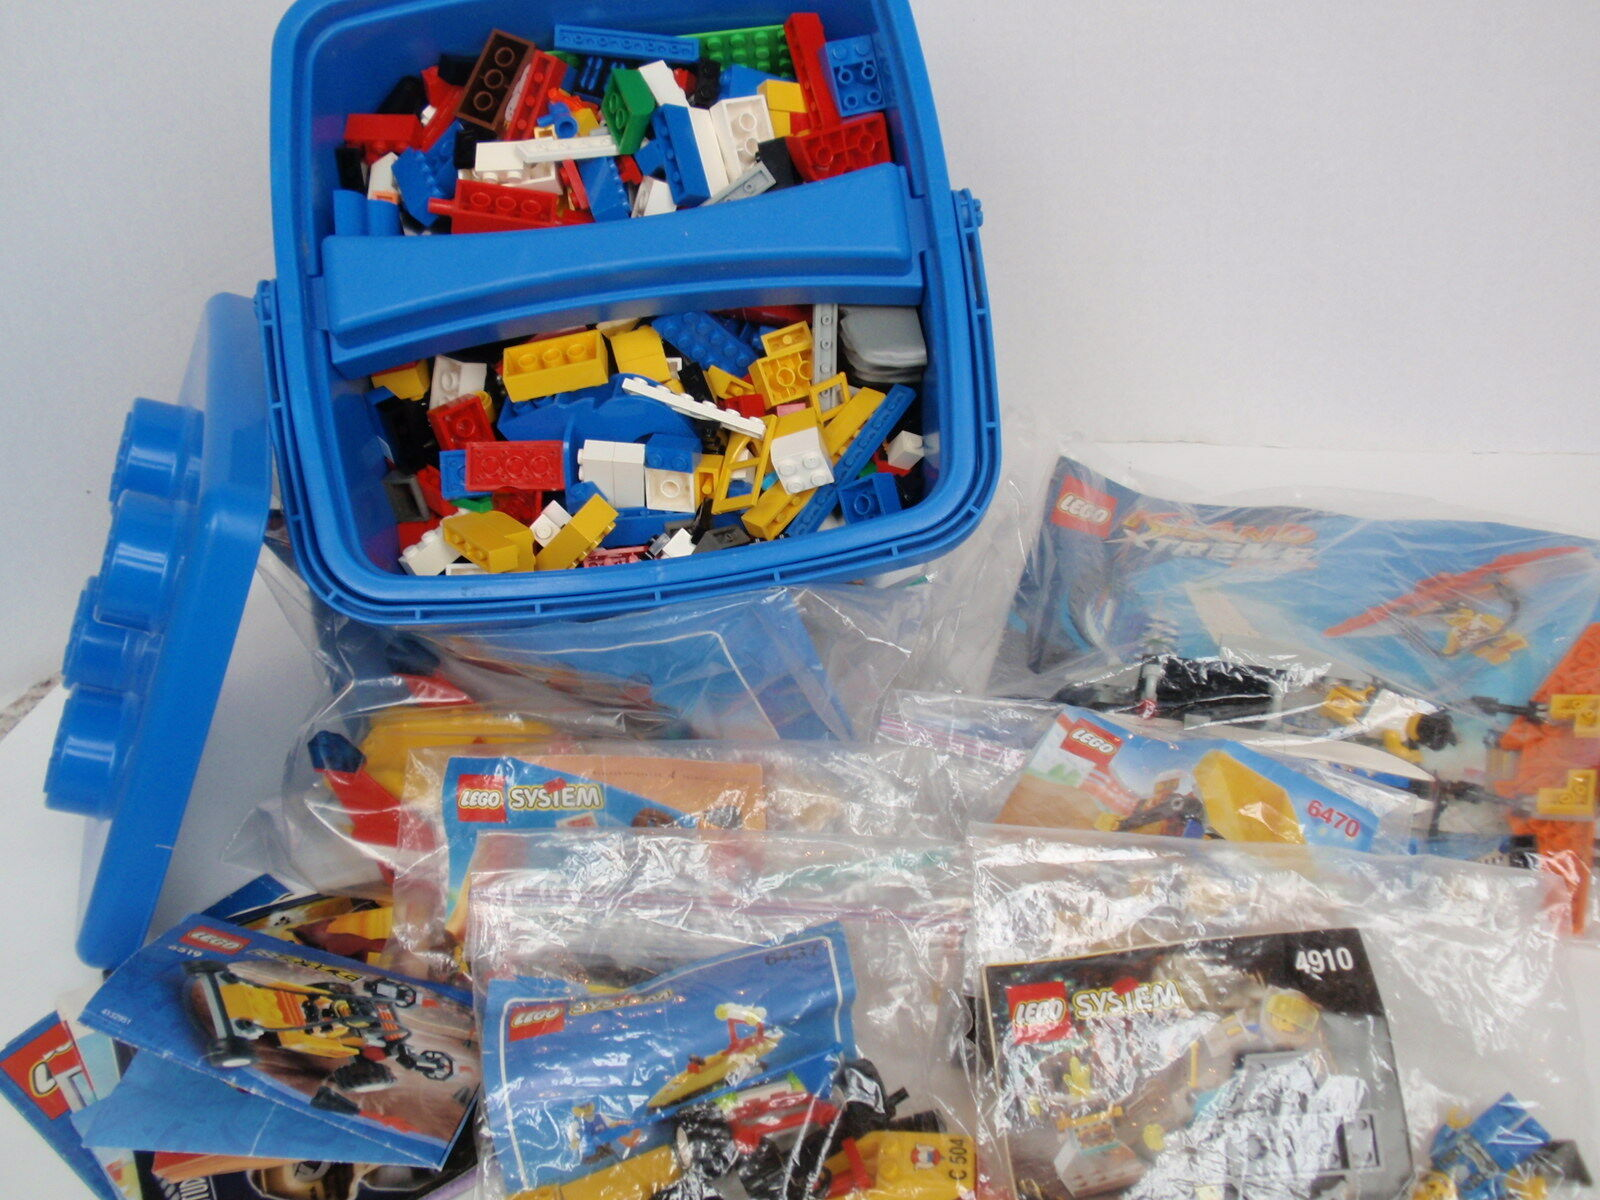 i nuovi marchi outlet online Group Lot LEGO Parts Minicifras Instructions Kits 4 4 4 lbs Plus Tub Storage giocattoli  ecco l'ultimo